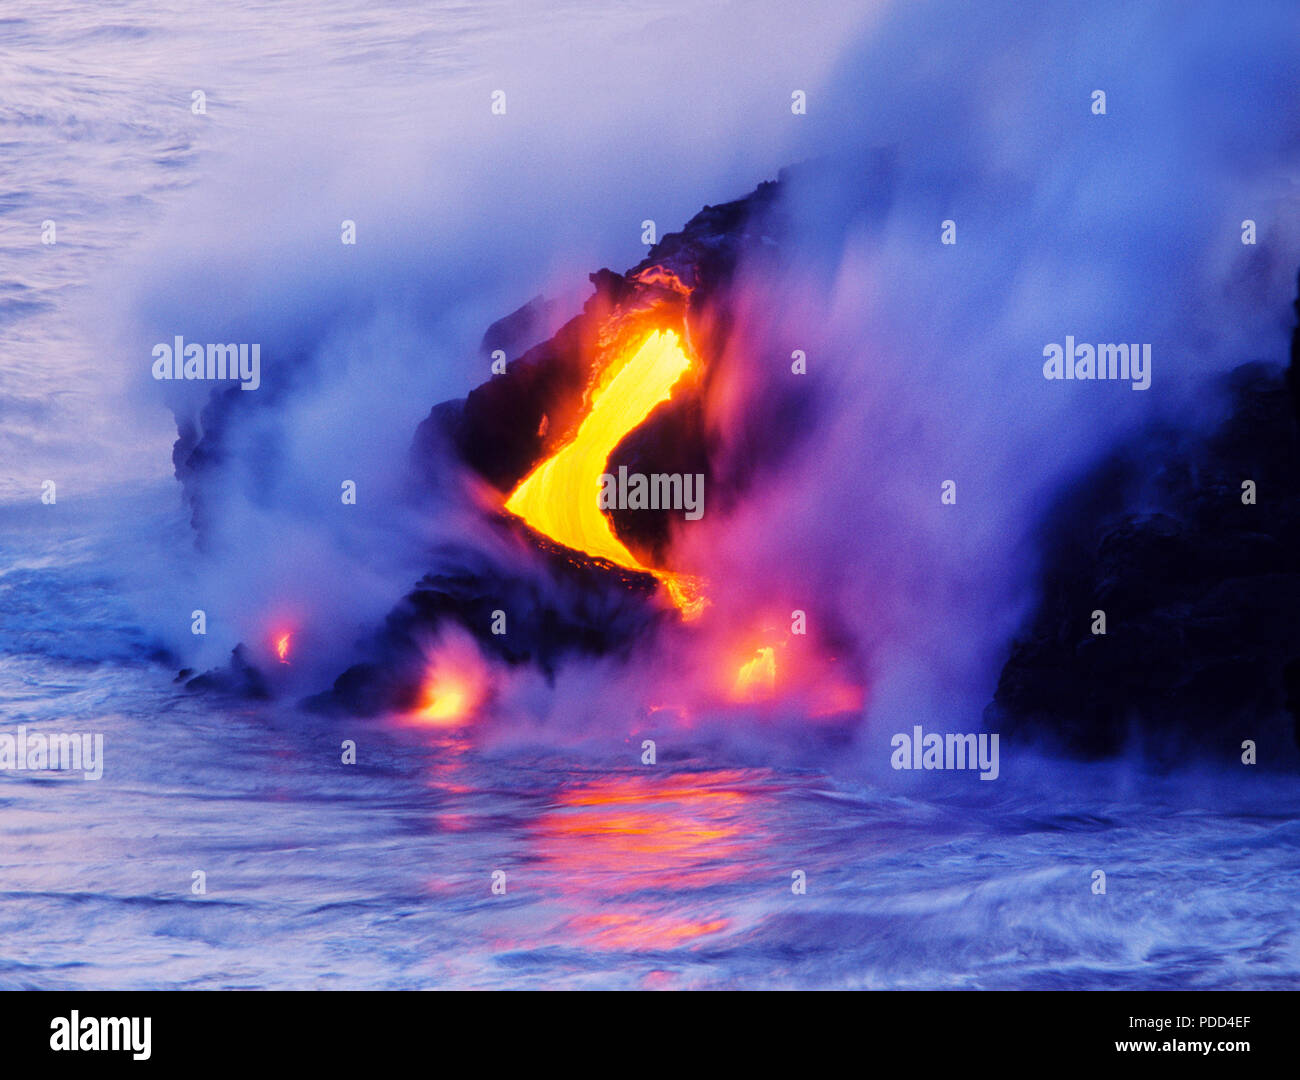 Lava flow, Kilauea Volcano, Hawaii. Lava hitting ocean and cooling - Stock Image